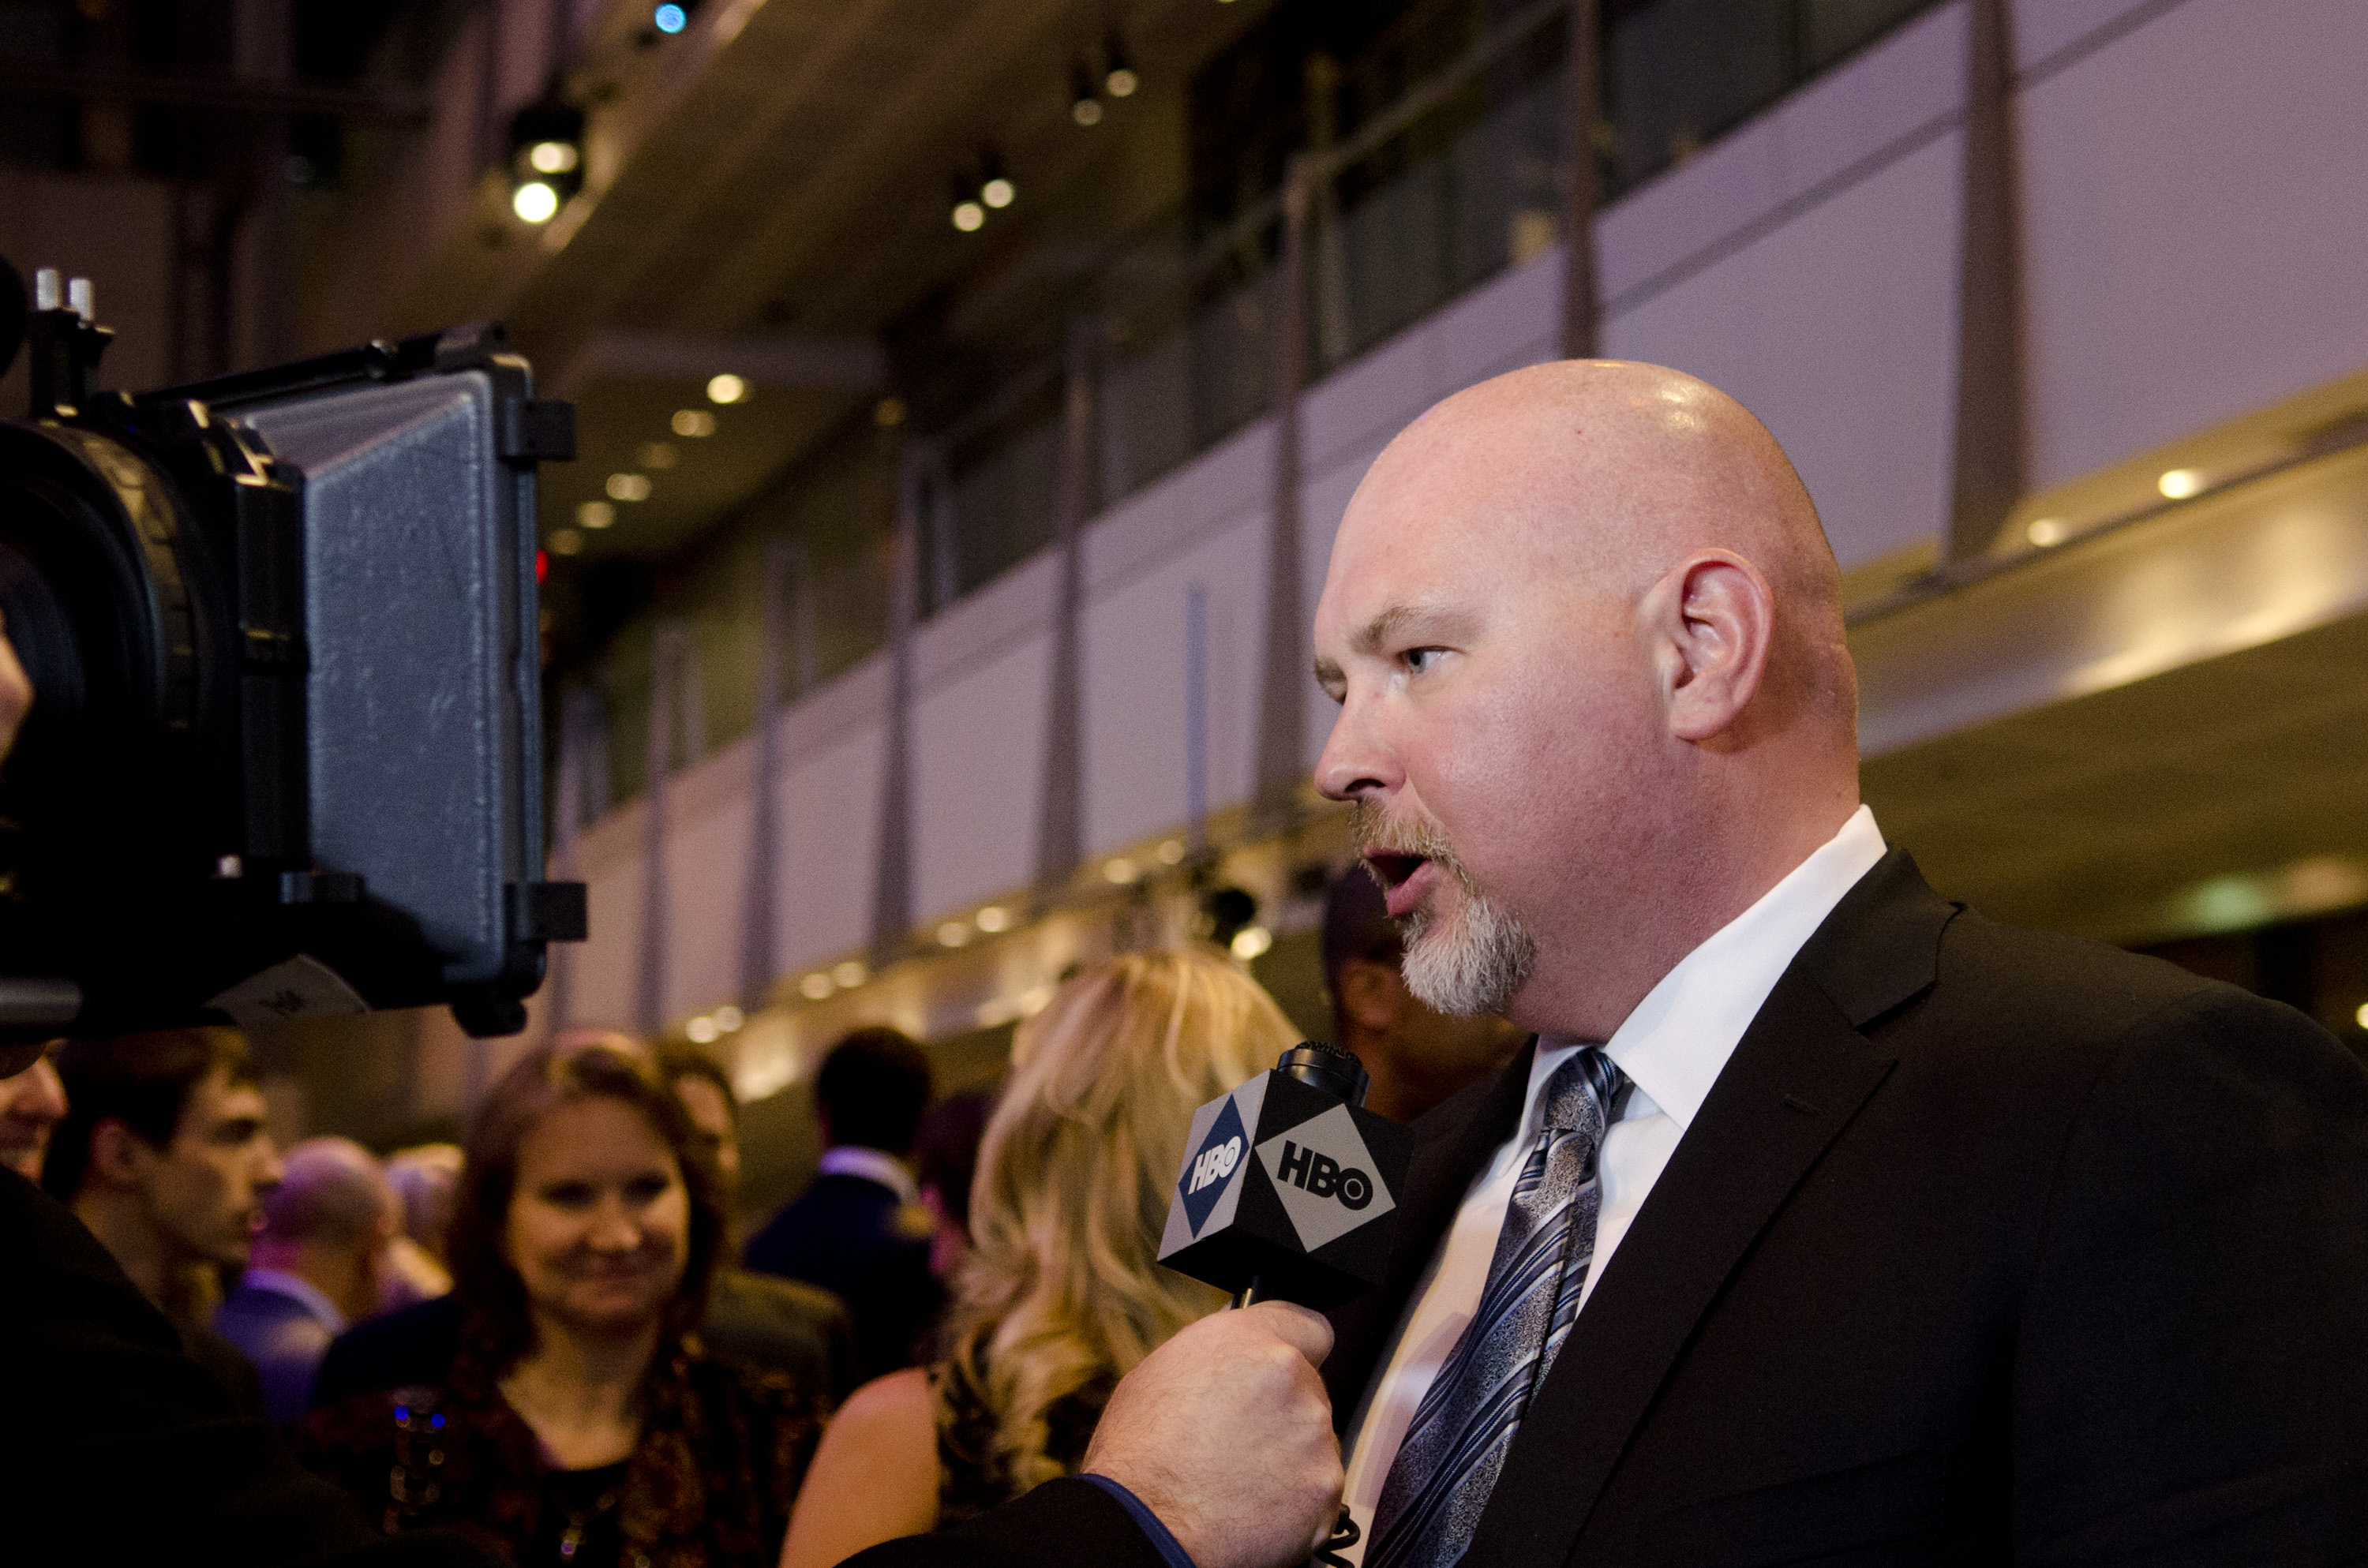 Steve Schmidt speaks with a reporter during the  Game Change  premiere at The Newseum on March 8, 2012 in Washington, DC.